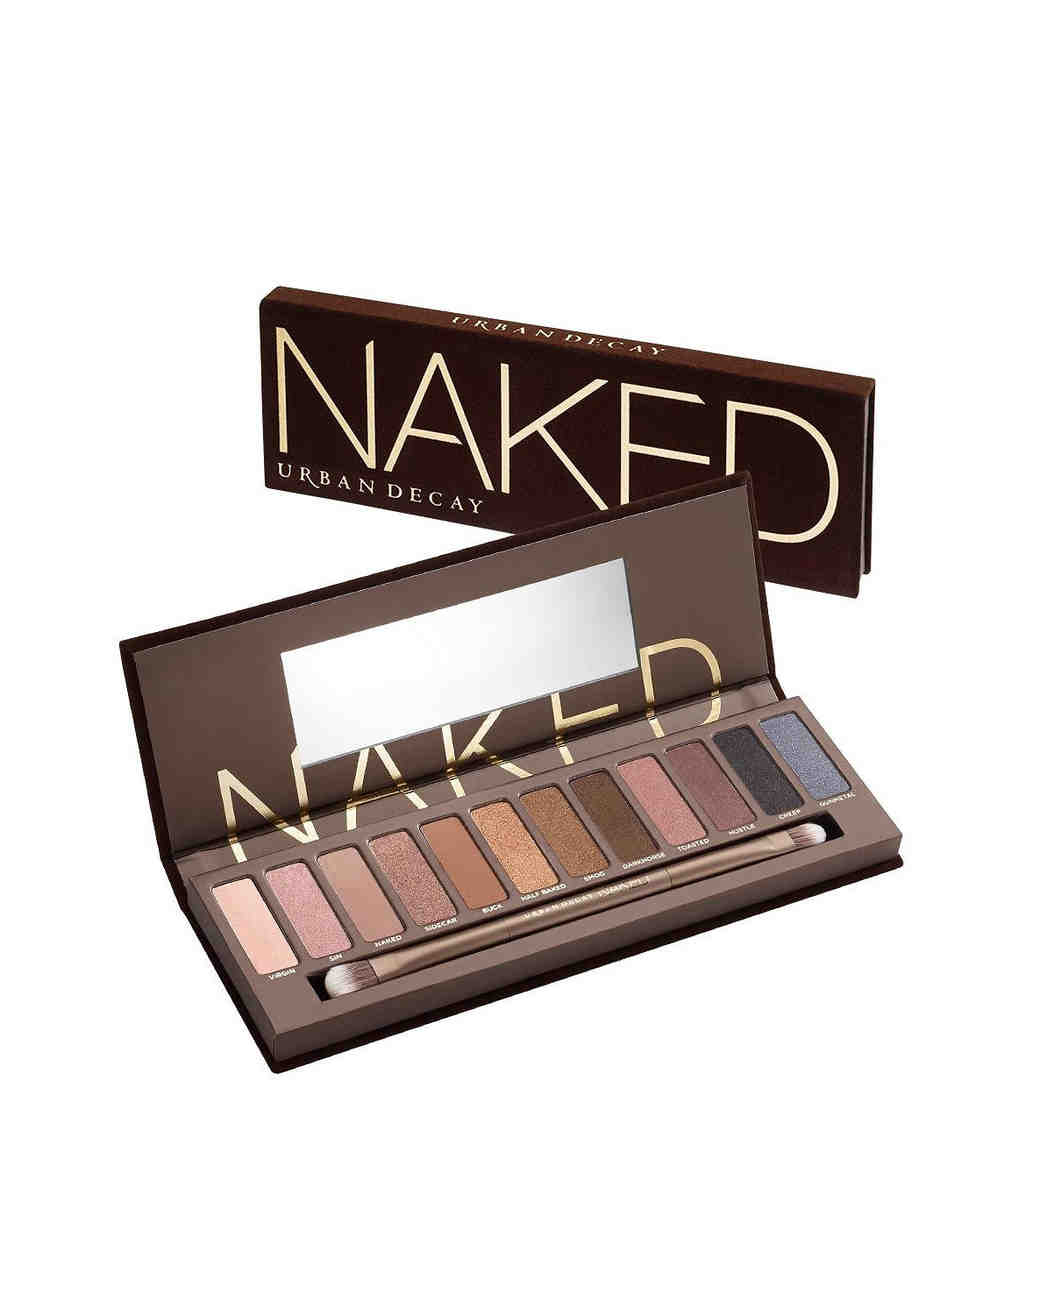 big-day-beauty-awards-urban-decay-naked-palette-eye-shadow-0216.jpg